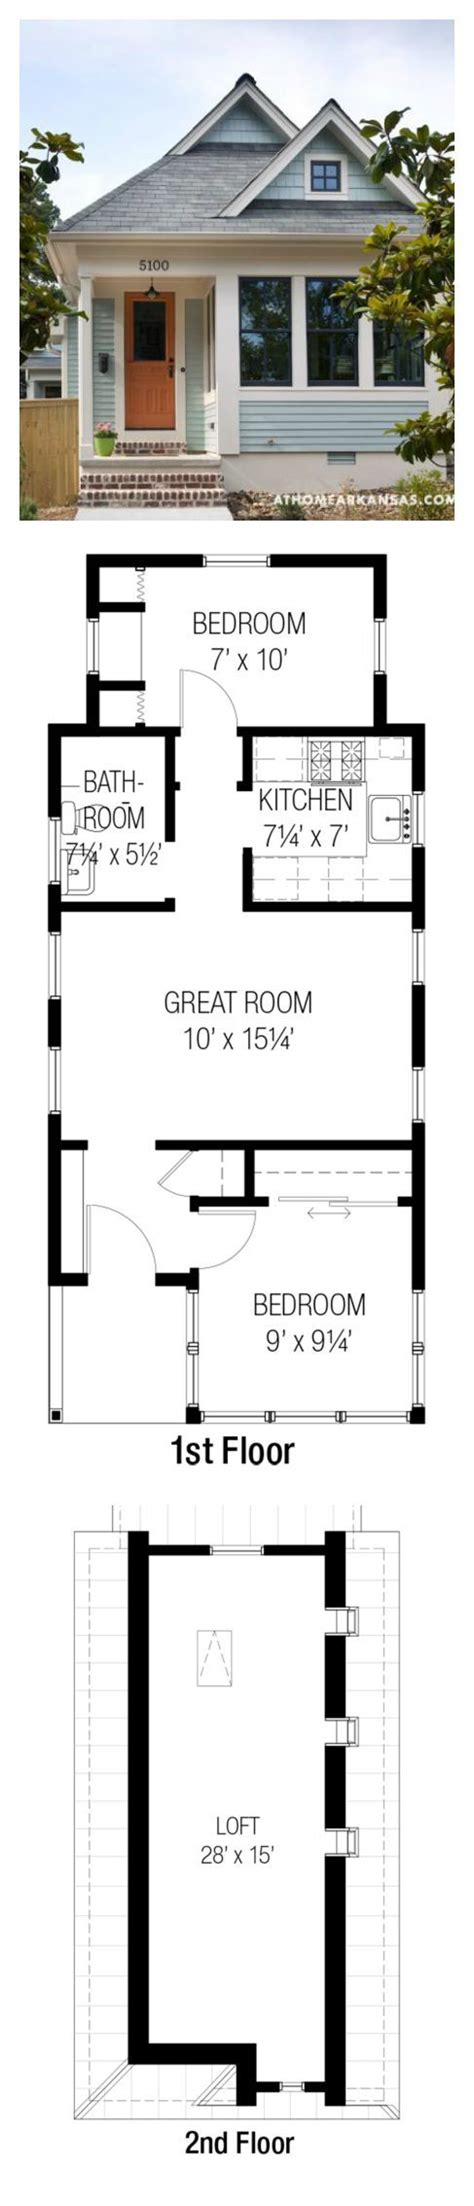 best small house floor plans best tiny house plans ideas small home 2 bedroom plan of